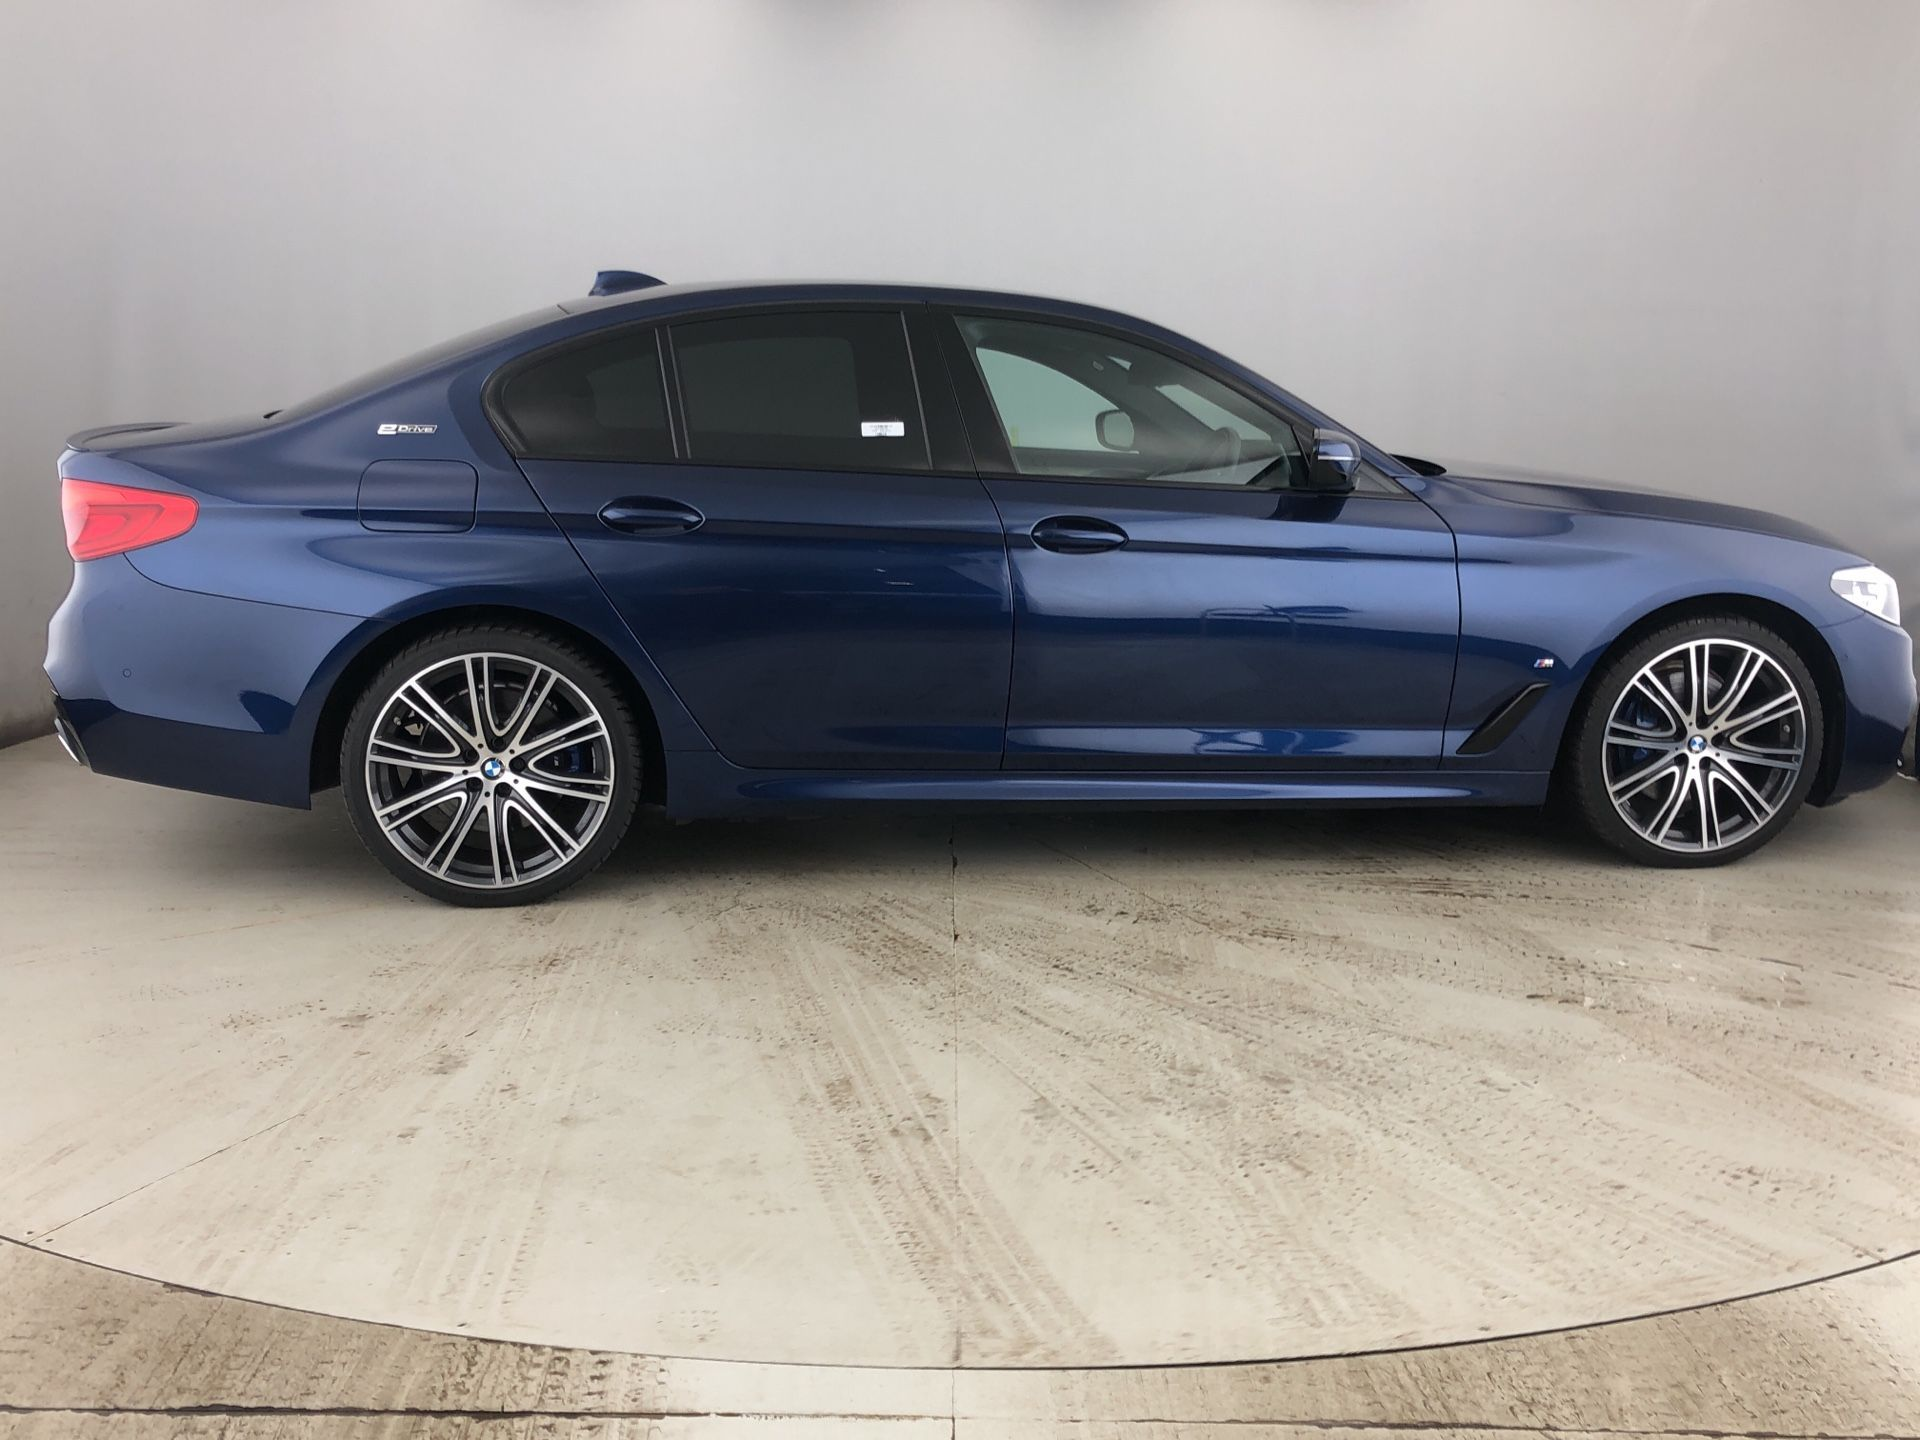 Image 3 - BMW 530e M Sport iPerformance Saloon (YJ68WUP)